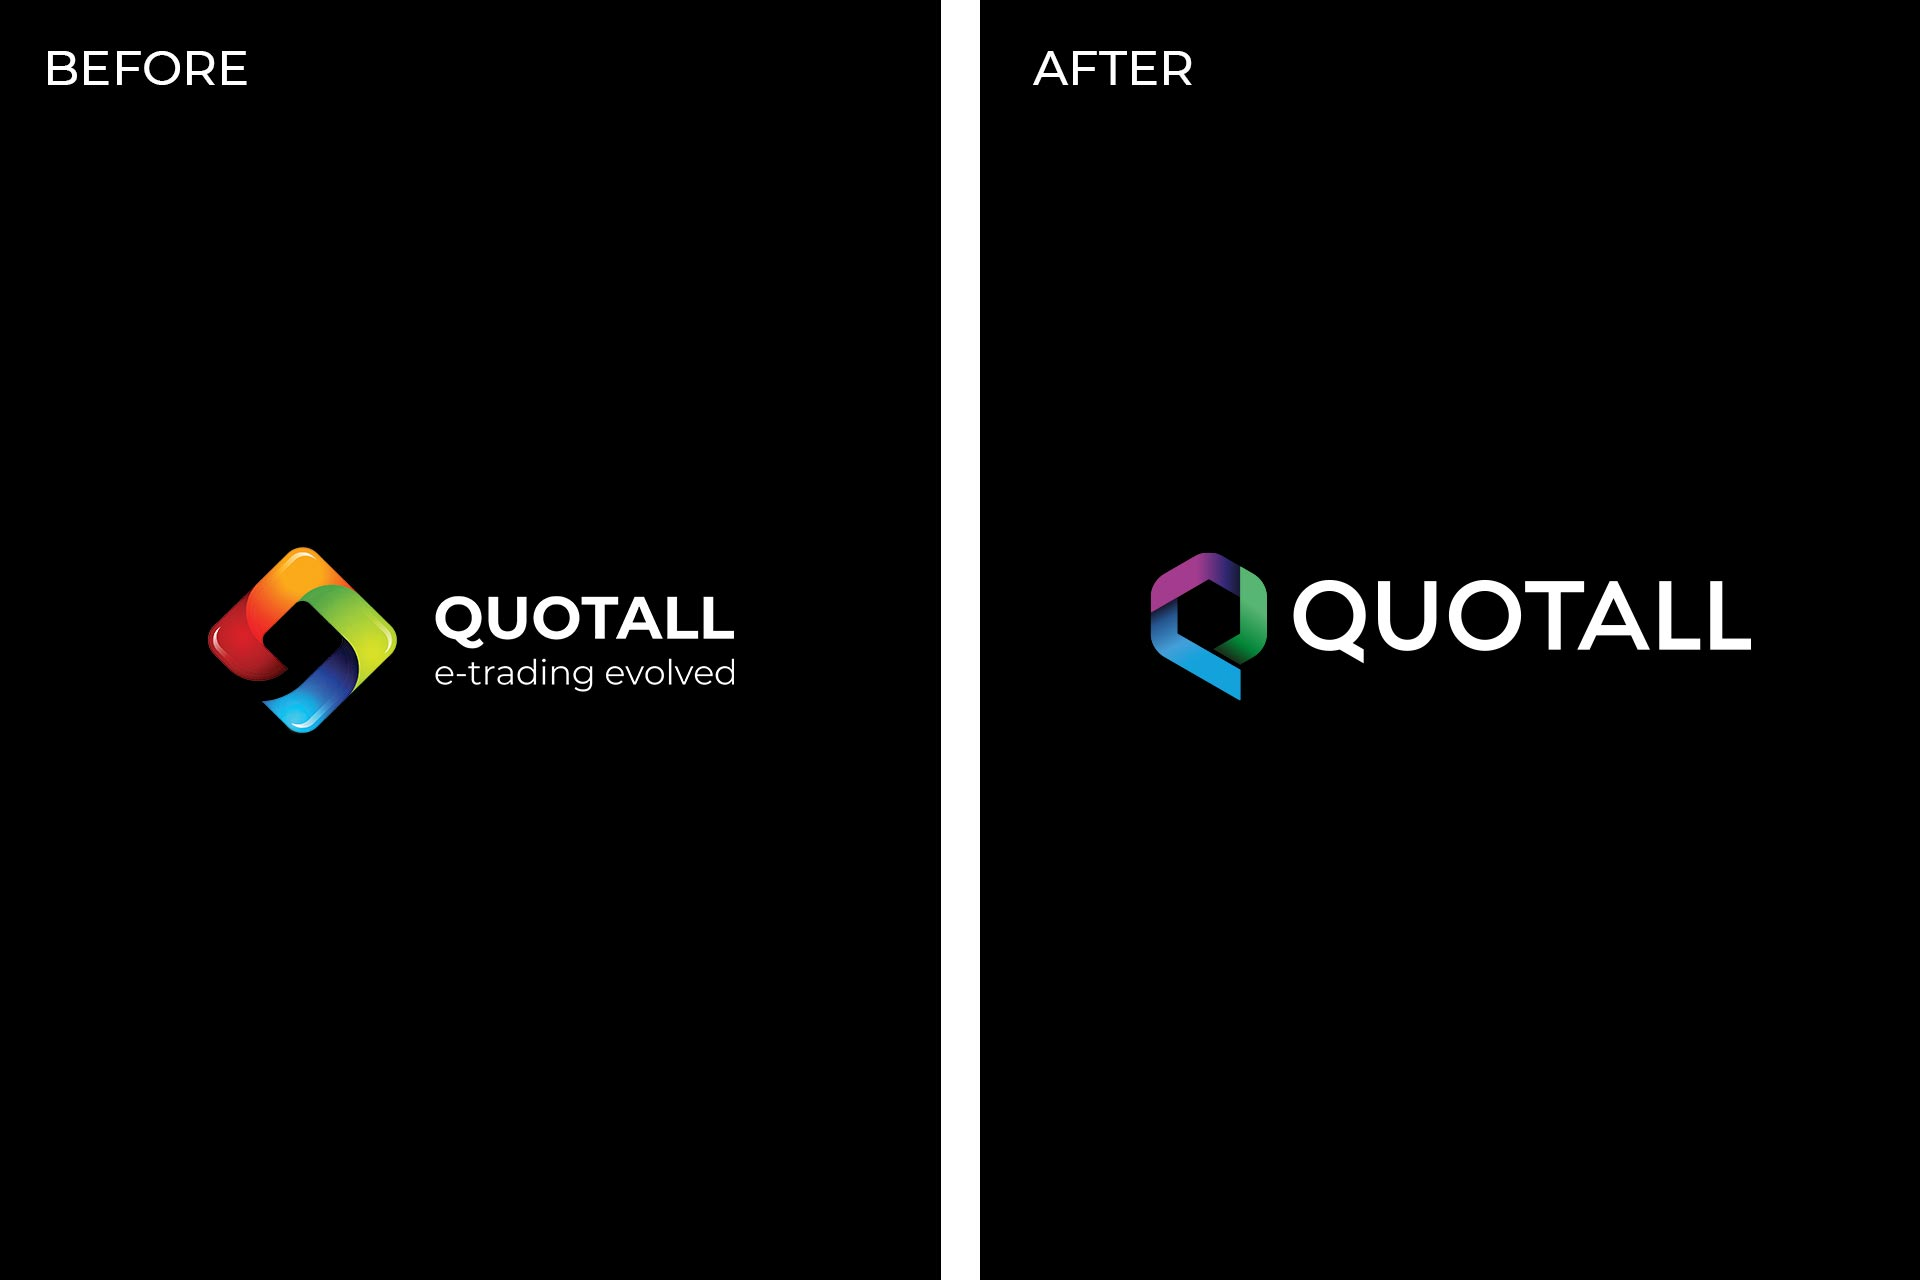 Quotall Logo Before and After